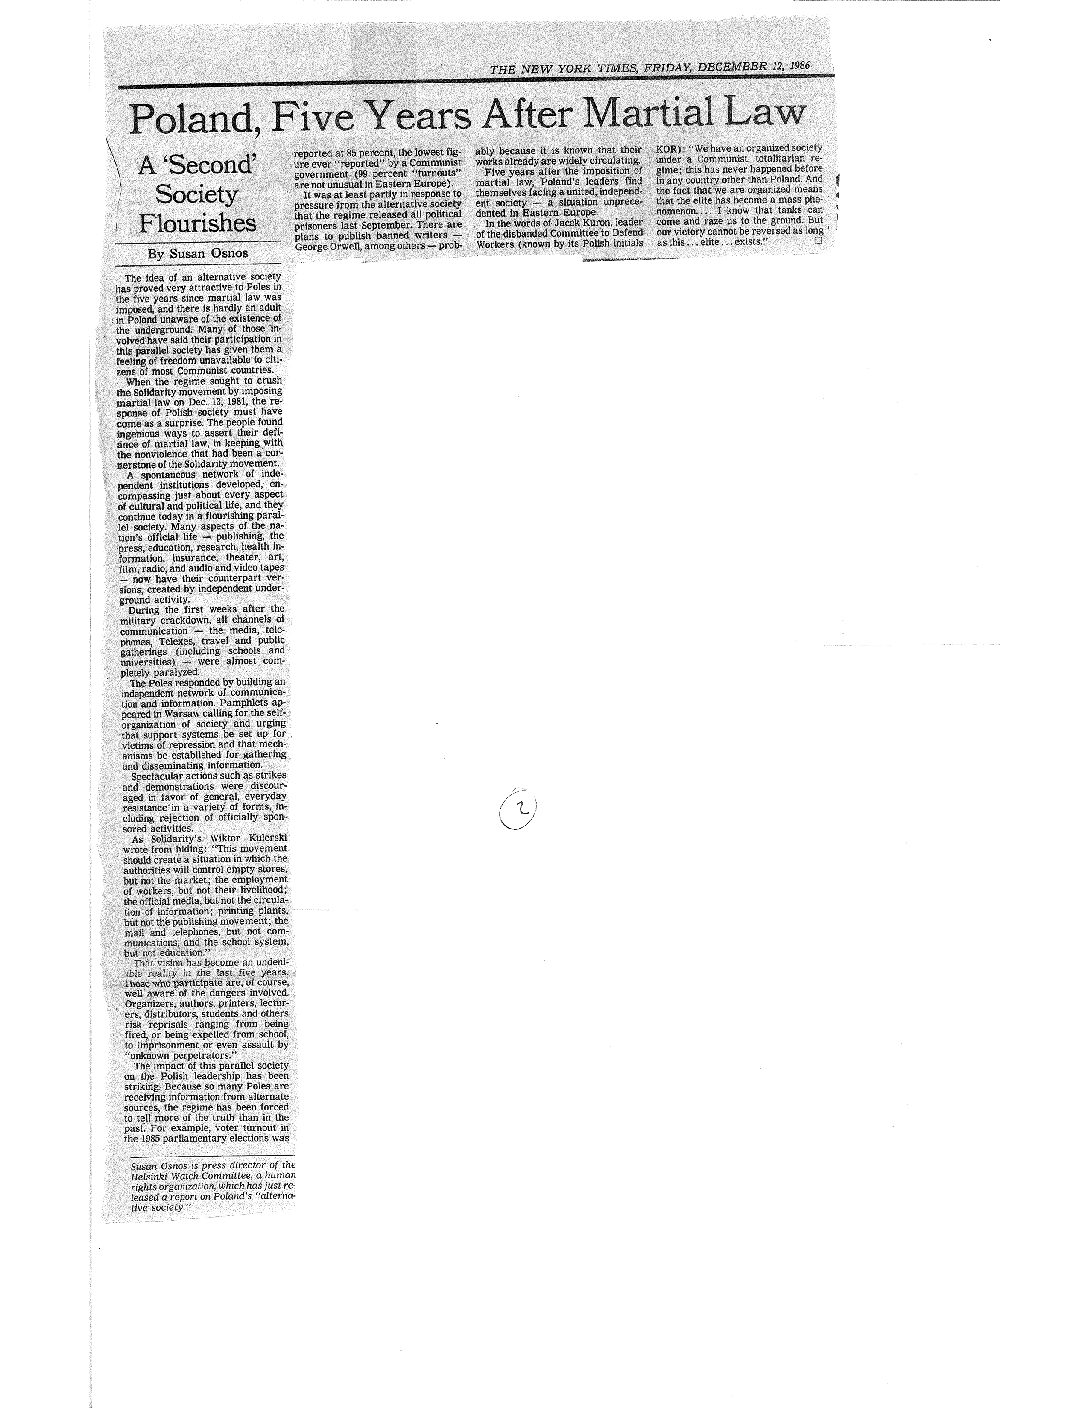 Op-ed in the New York Times (top of the page)